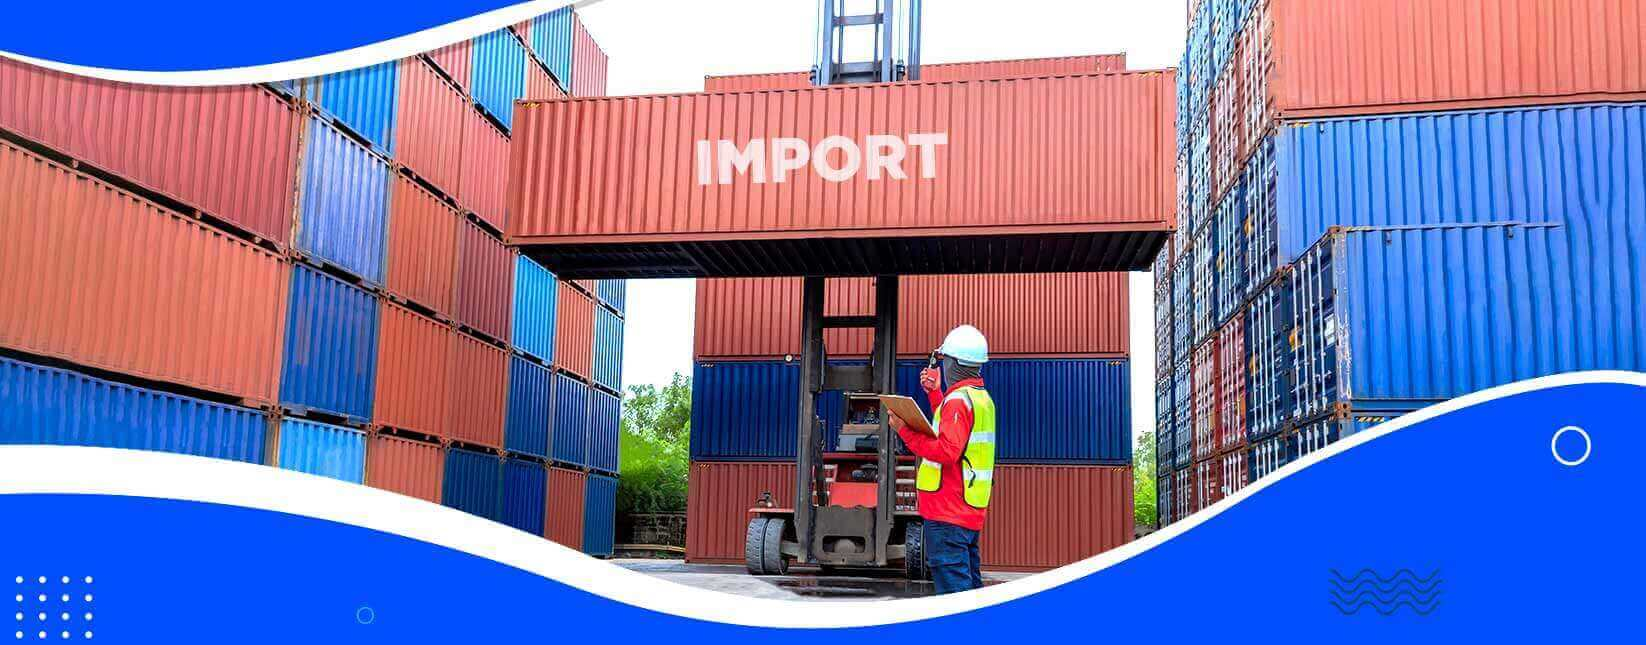 Import Challenges in India, and Ways to Fix Them